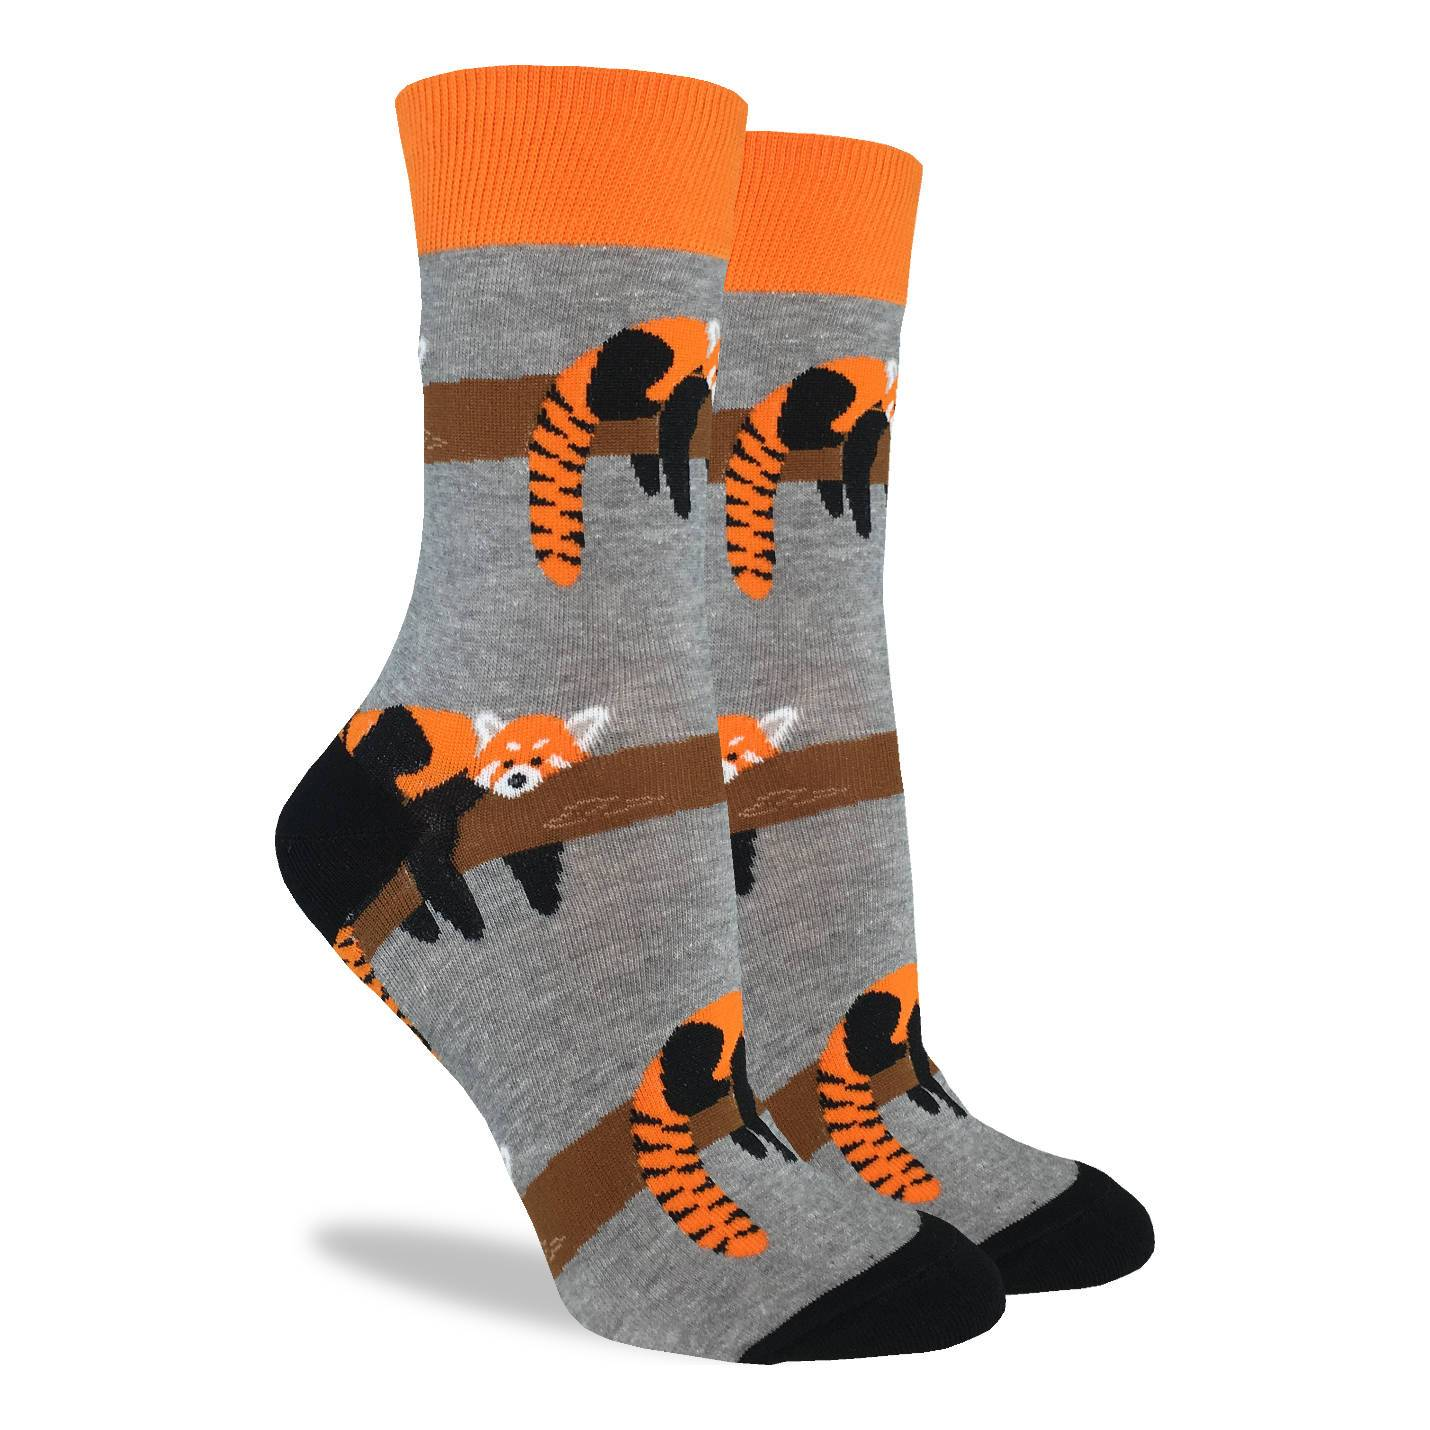 Women's Red Panda Socks - Good Luck Sock